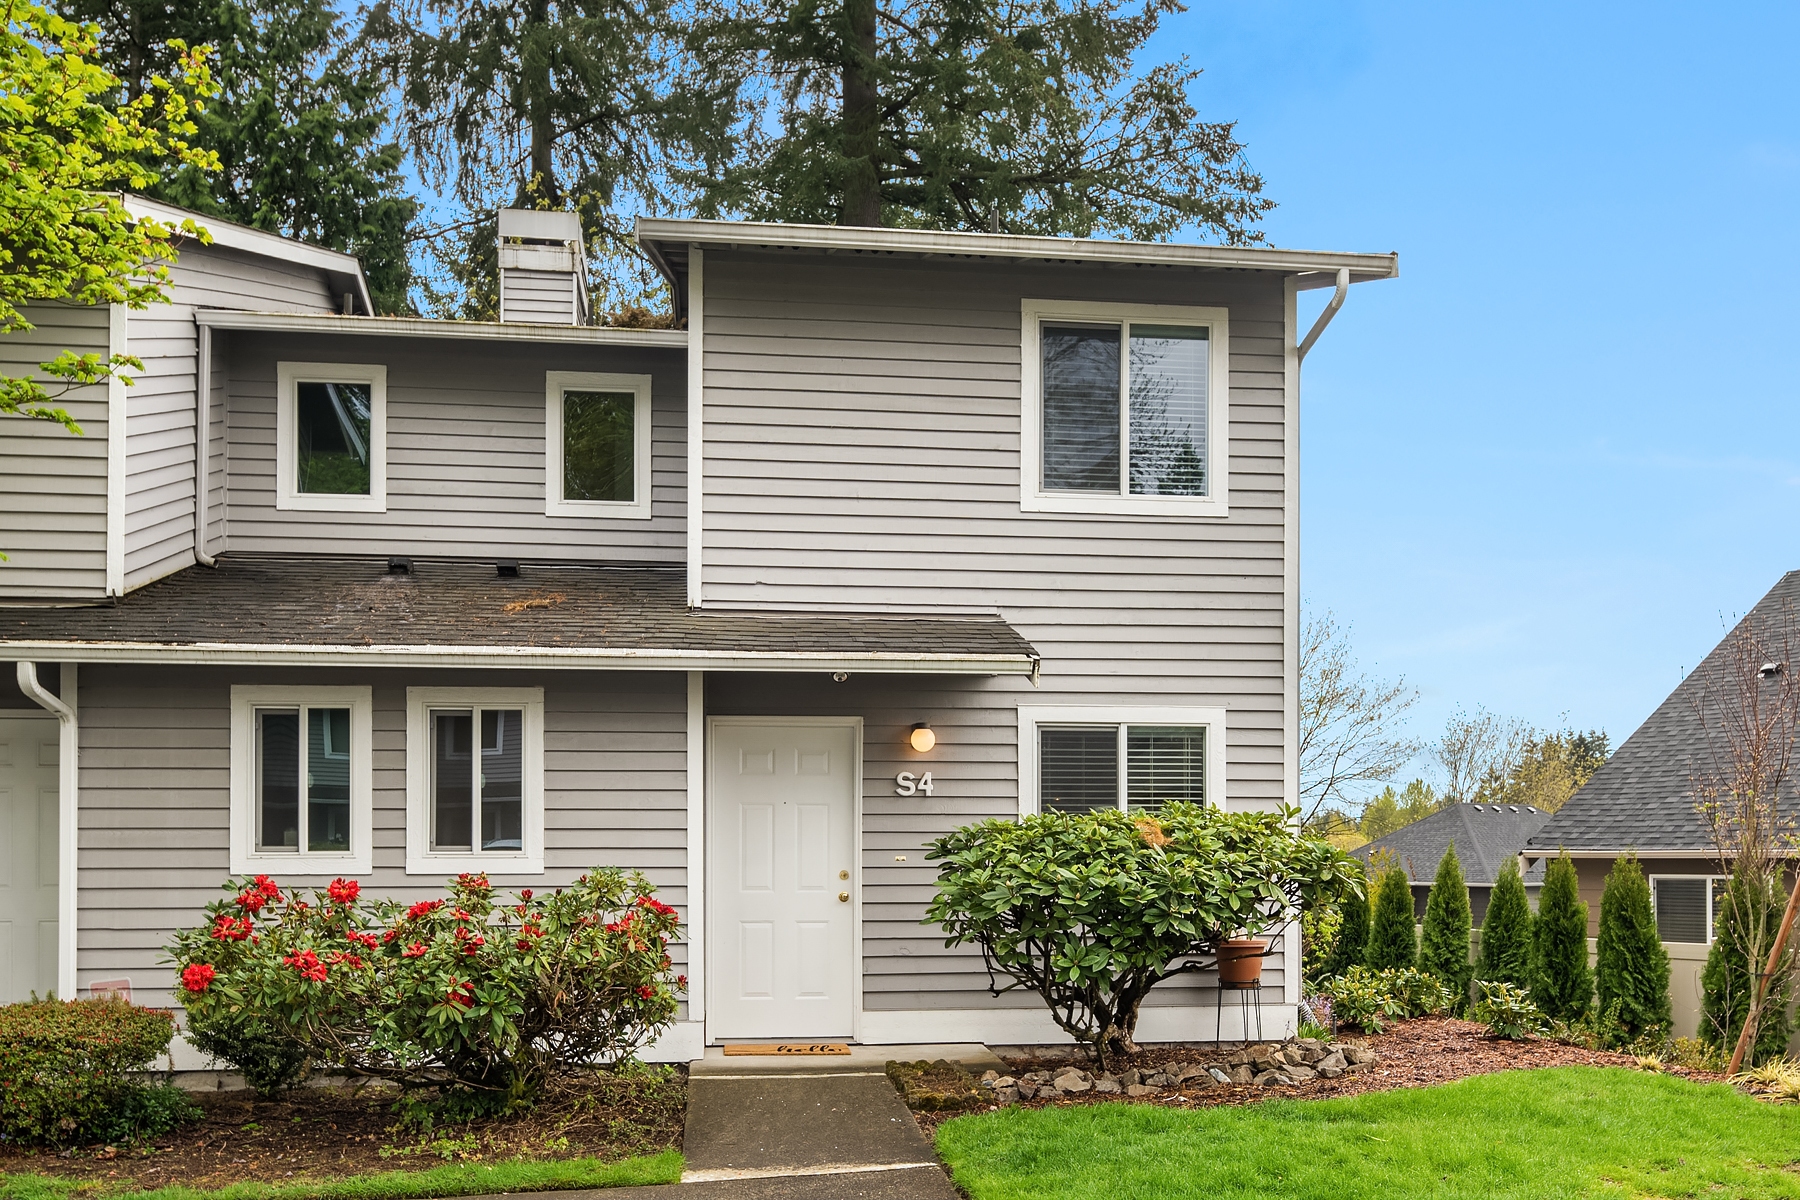 *1526 192nd St SE #S4, Bothell | $301,000